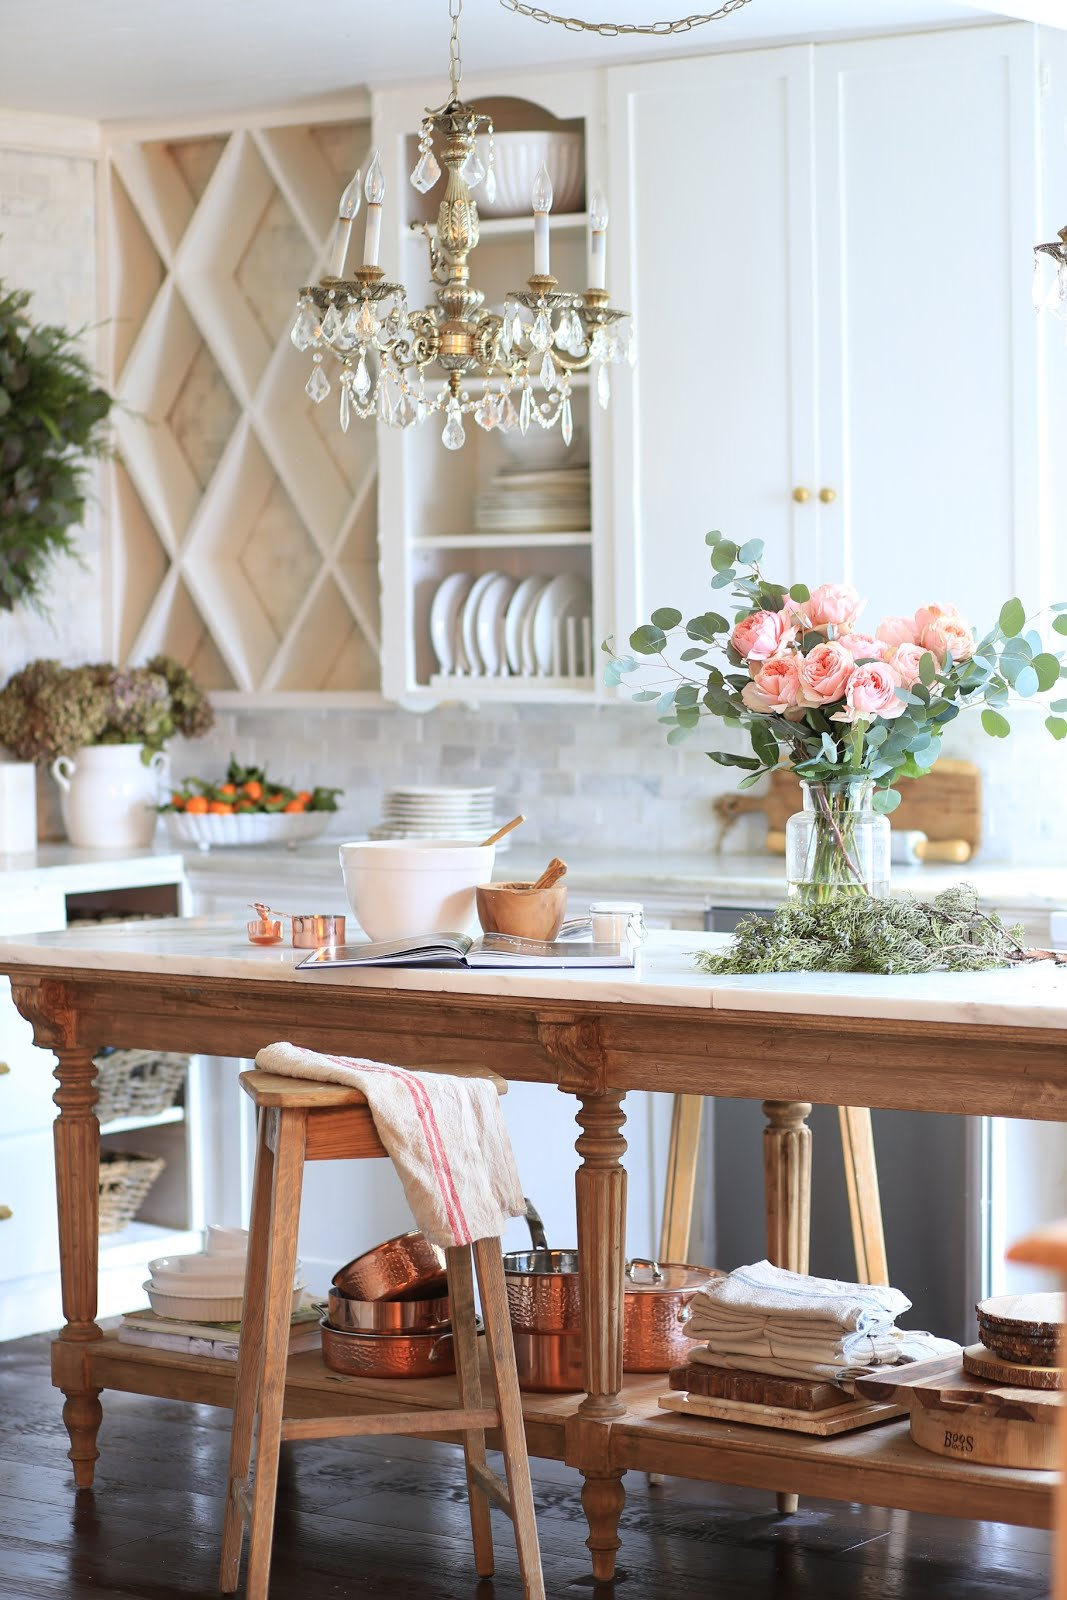 A charming vintage inspired kitchen island  FRENCH